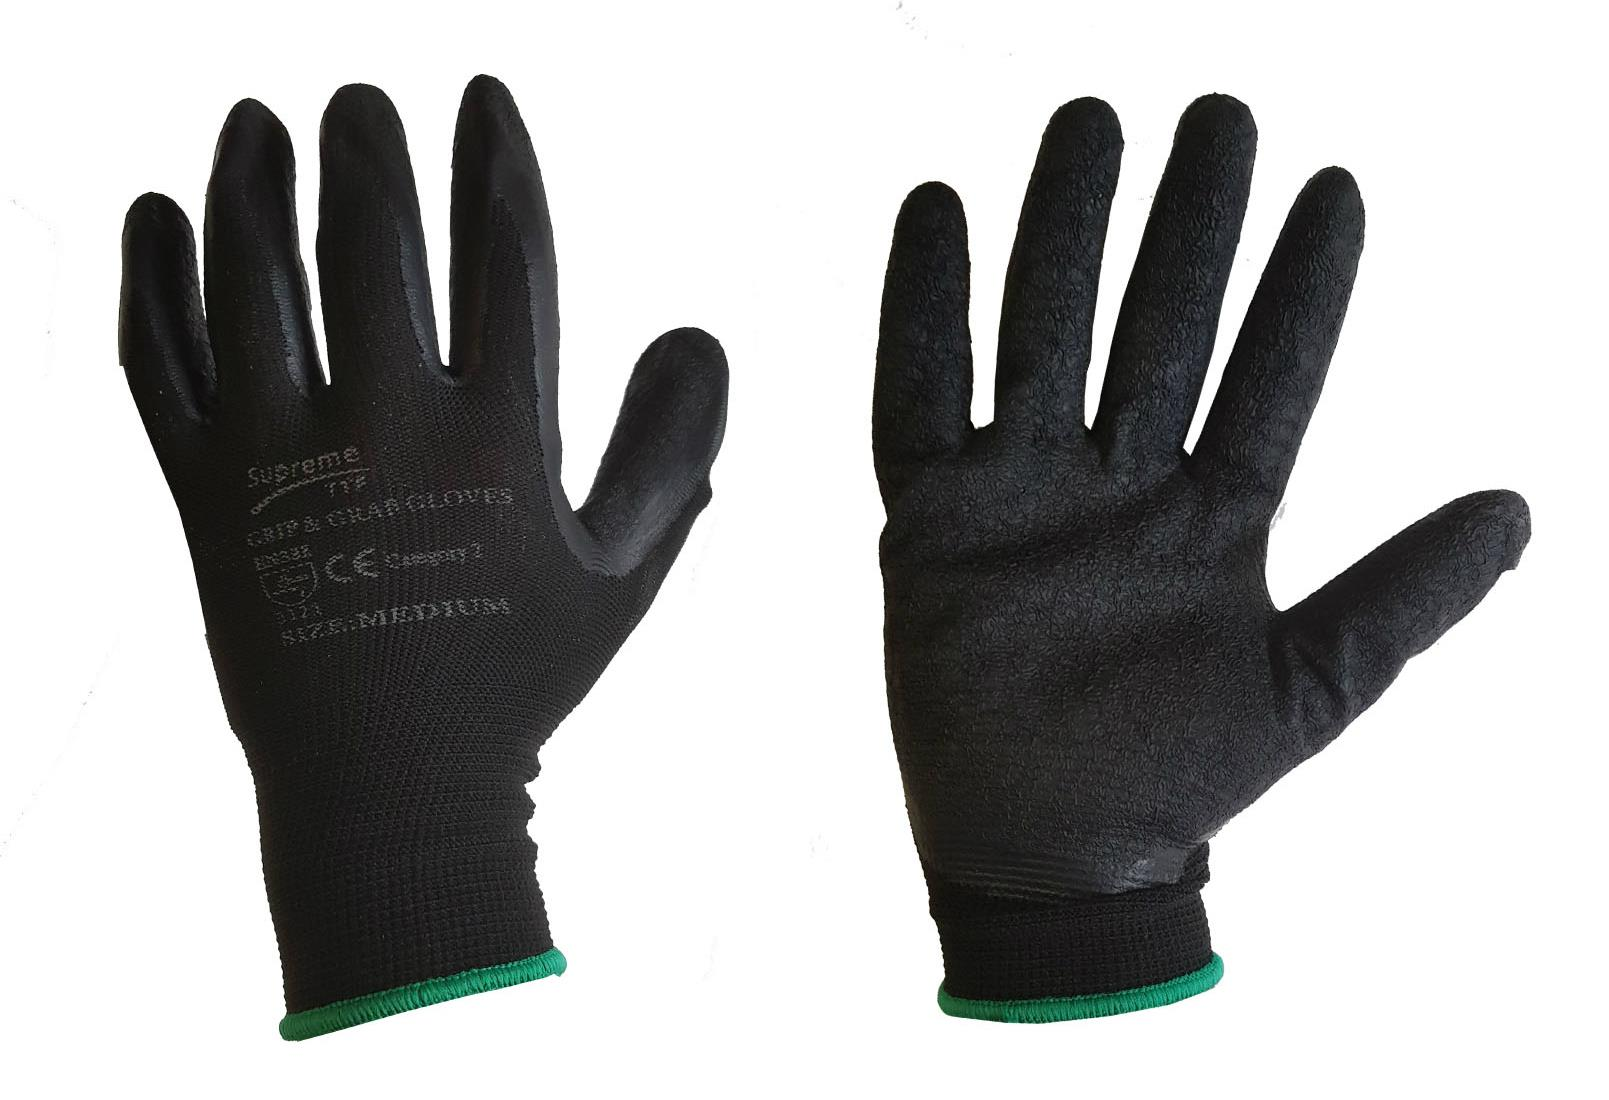 GRAB N GRIP WATERPROOF BUILDERS GRAB /& GRIP GLOVES HIGH FLEX LATEX PALM,WORK